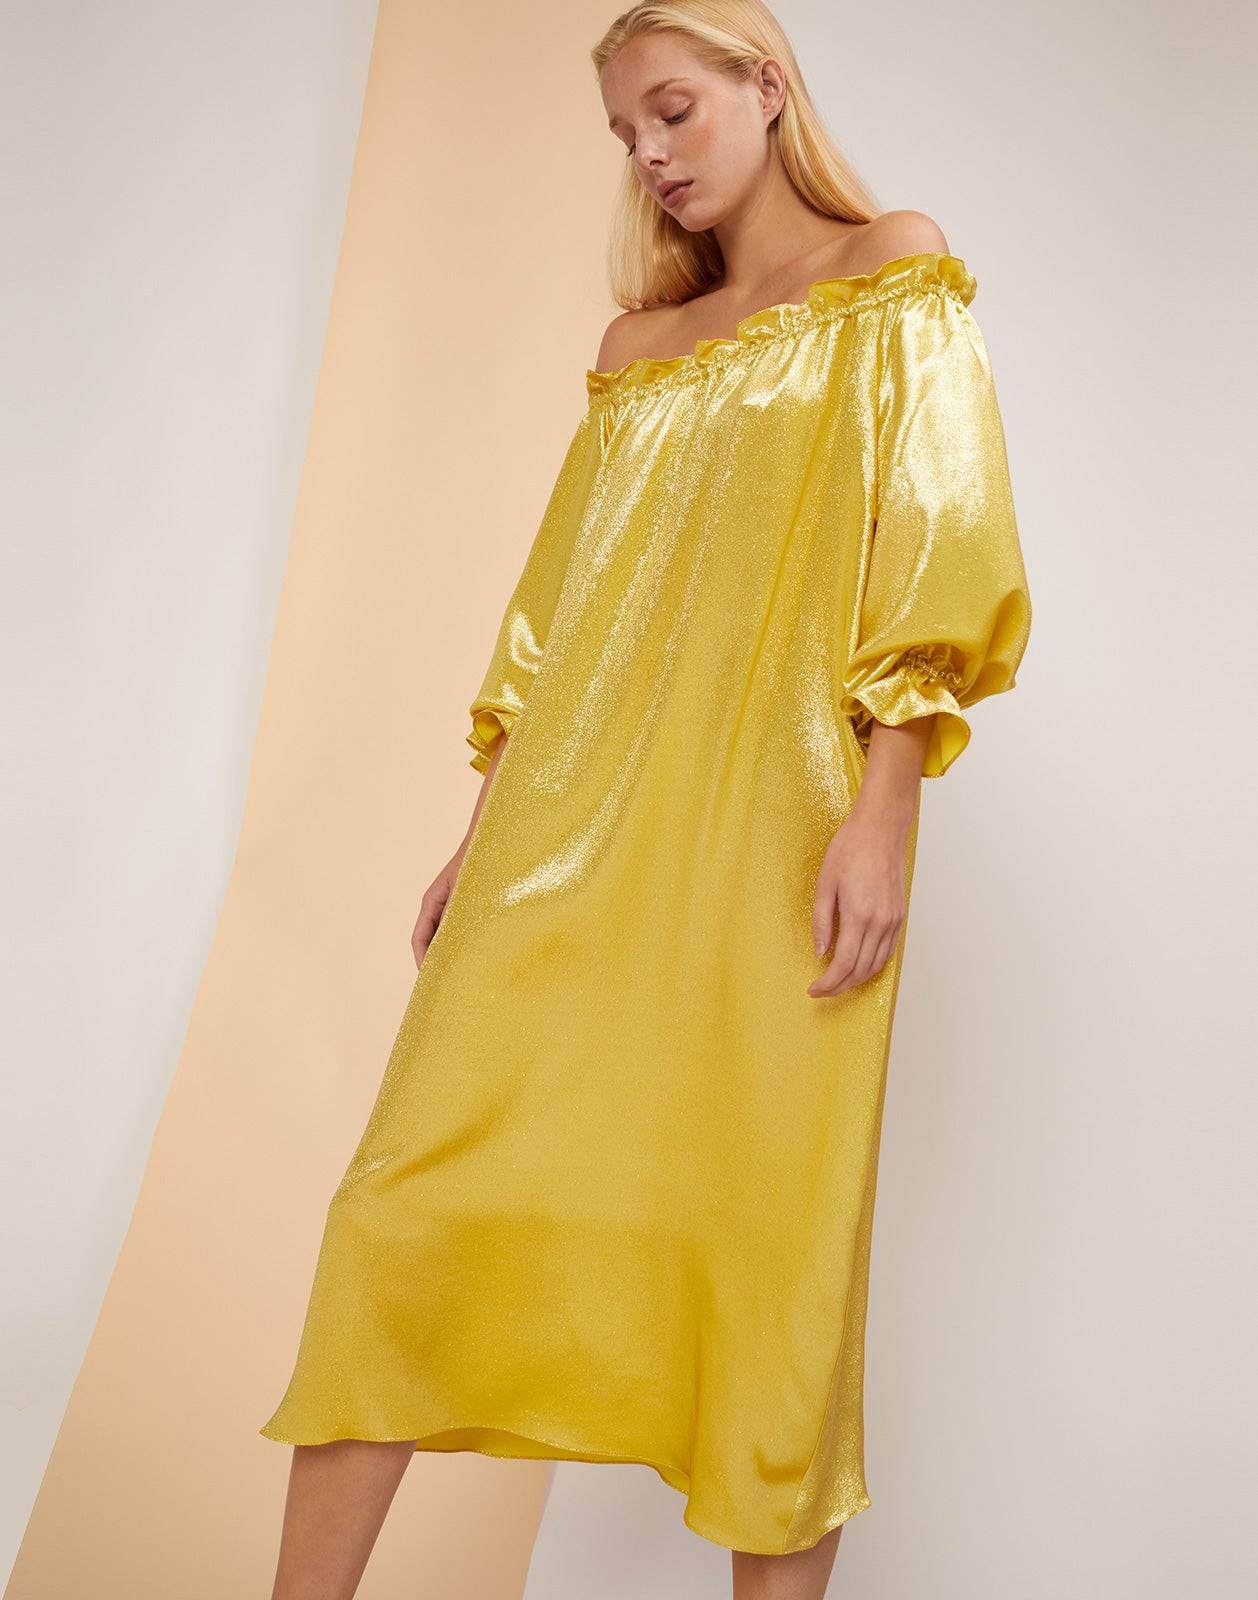 Front view of the Shanely yellow metallic silk shimmer dress.